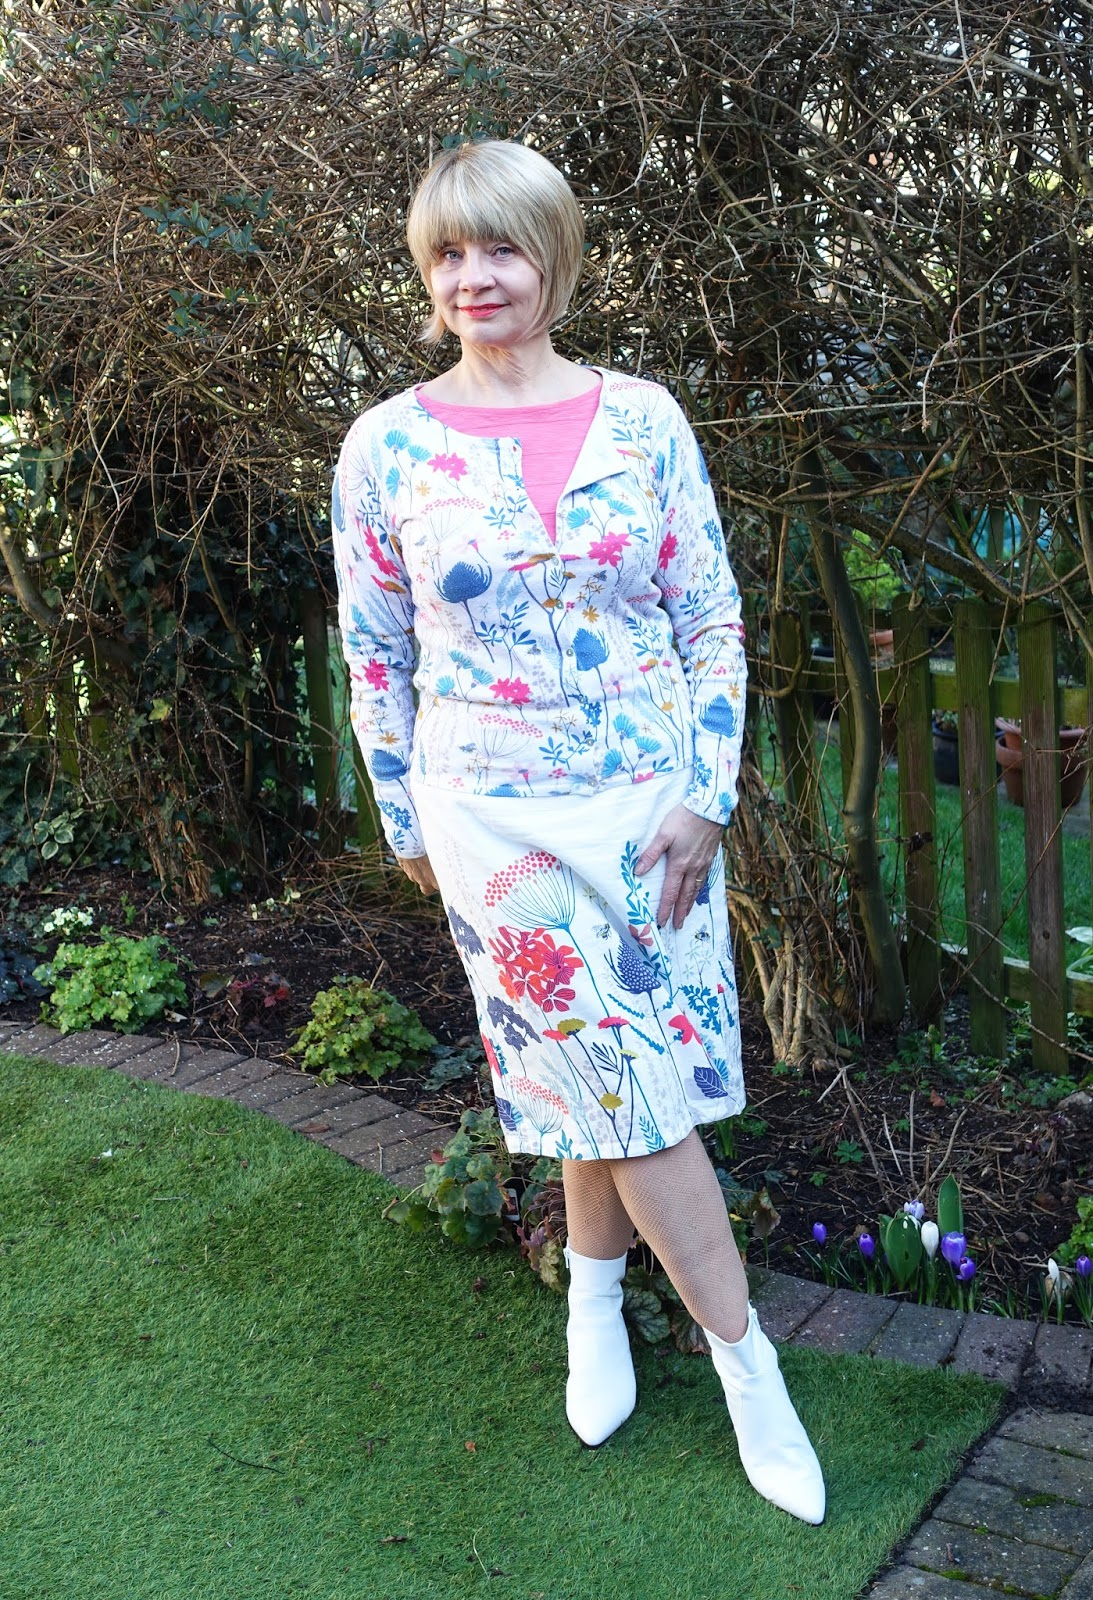 Over-50s blogger Gail Hanlon in floral patterned skirt, cardigan and coral top from UK family business Lily and Me